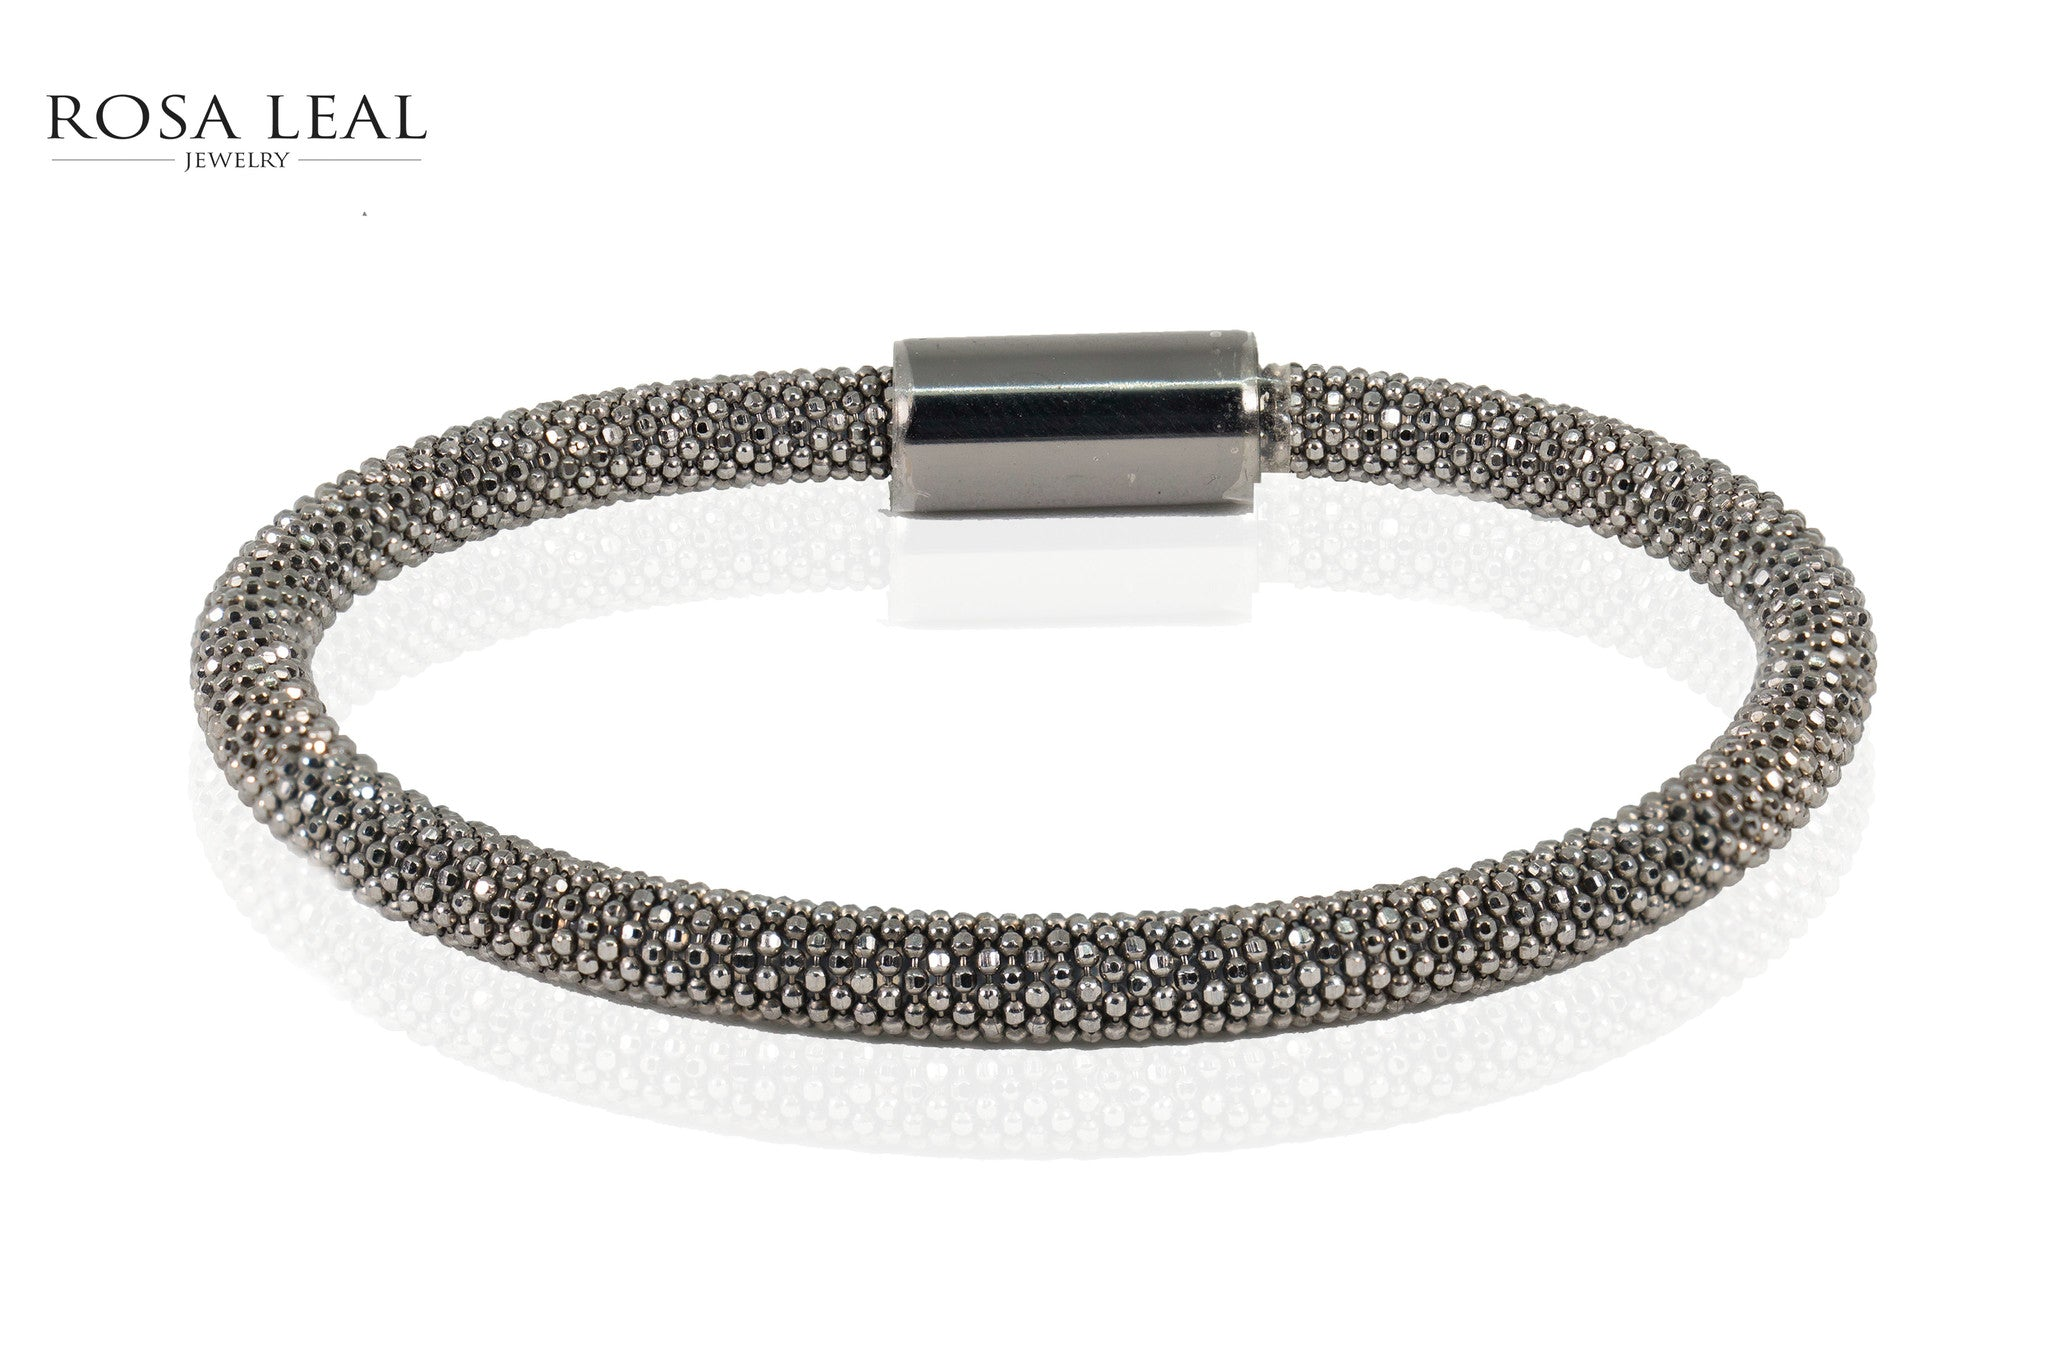 steel tiger leo plated eye beads bracelet stainless and products divider rhodium stone with bracelets milano